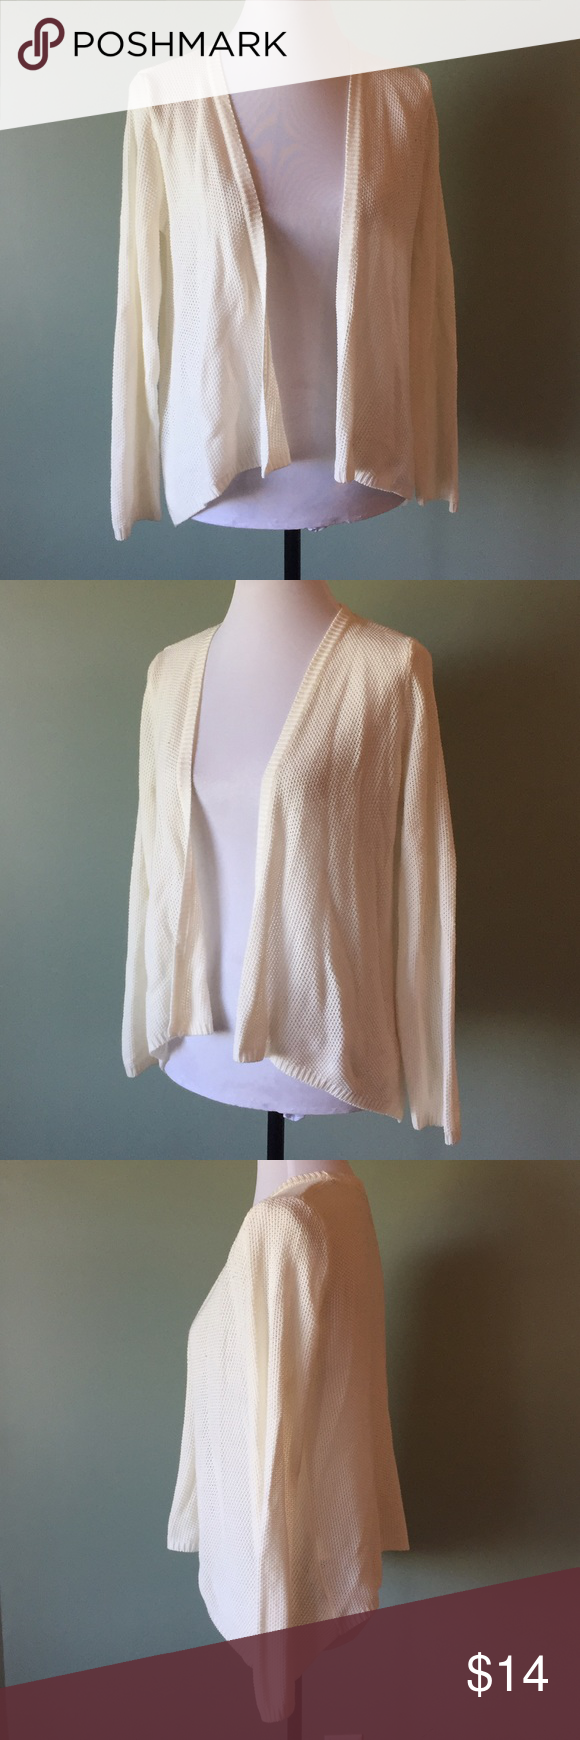 Cream colored cardigan H&M small Cream colored cardigan. Really ...